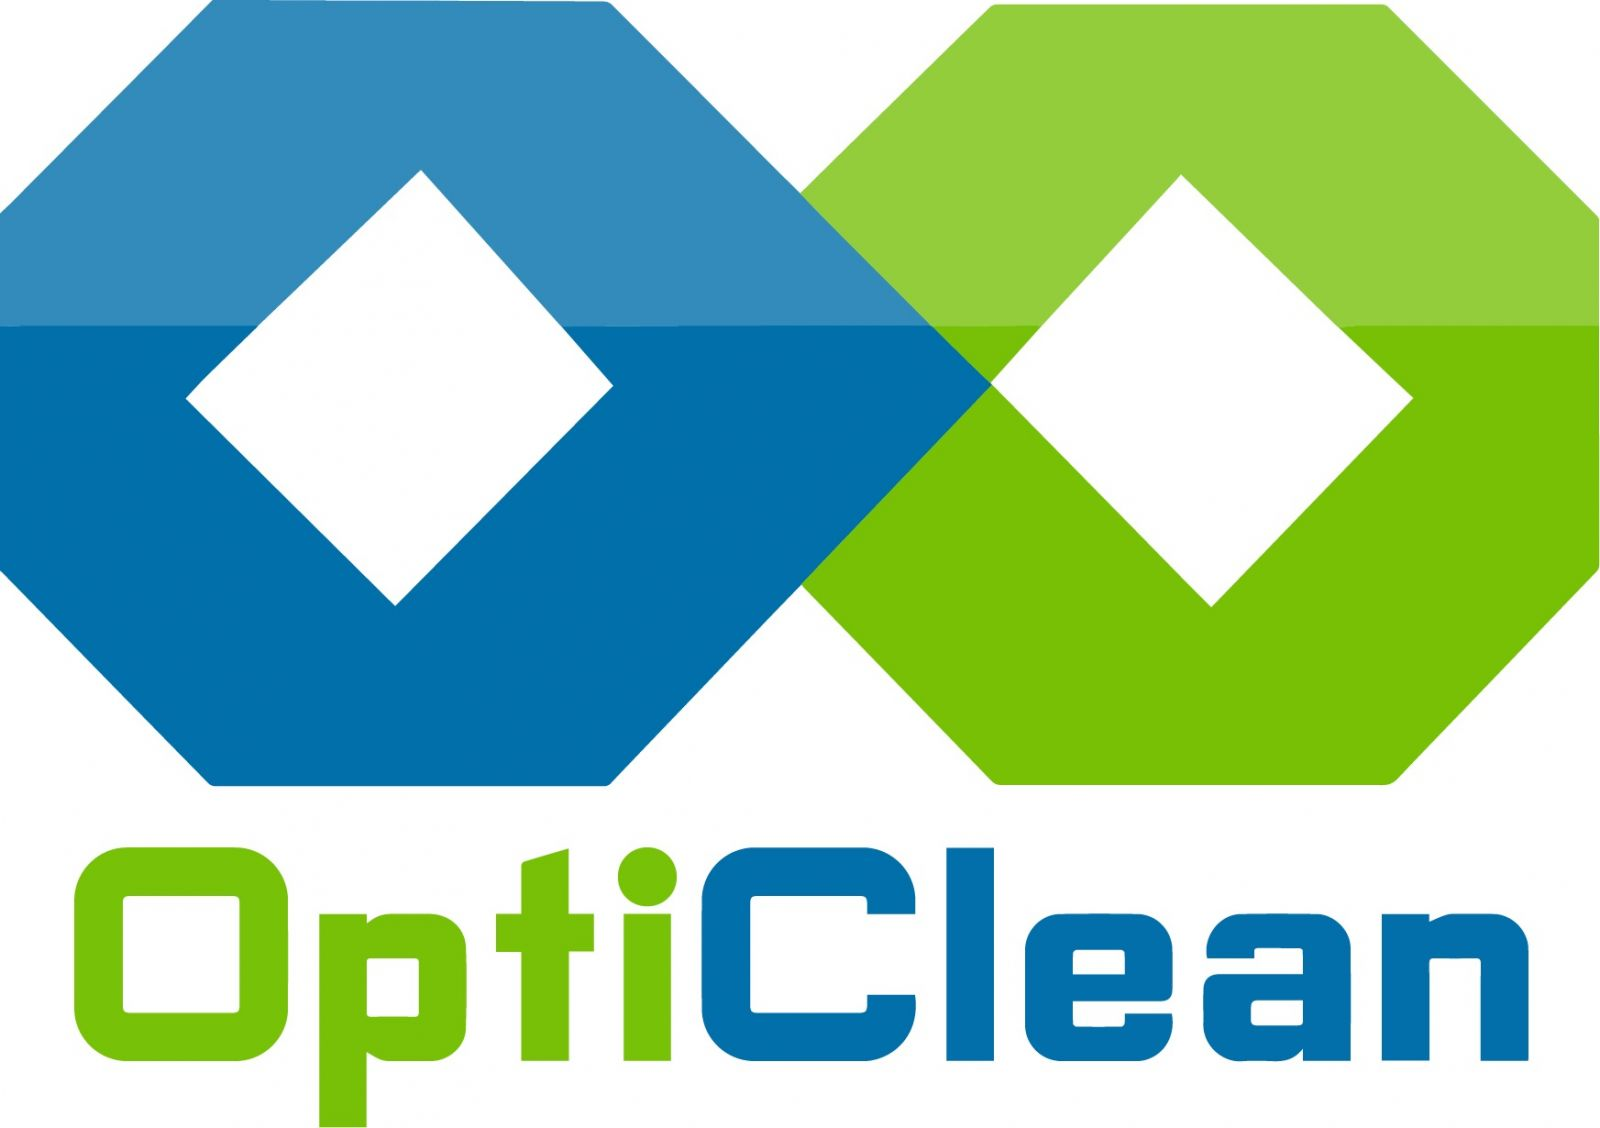 optimisation NEP/CIP-OptiClean